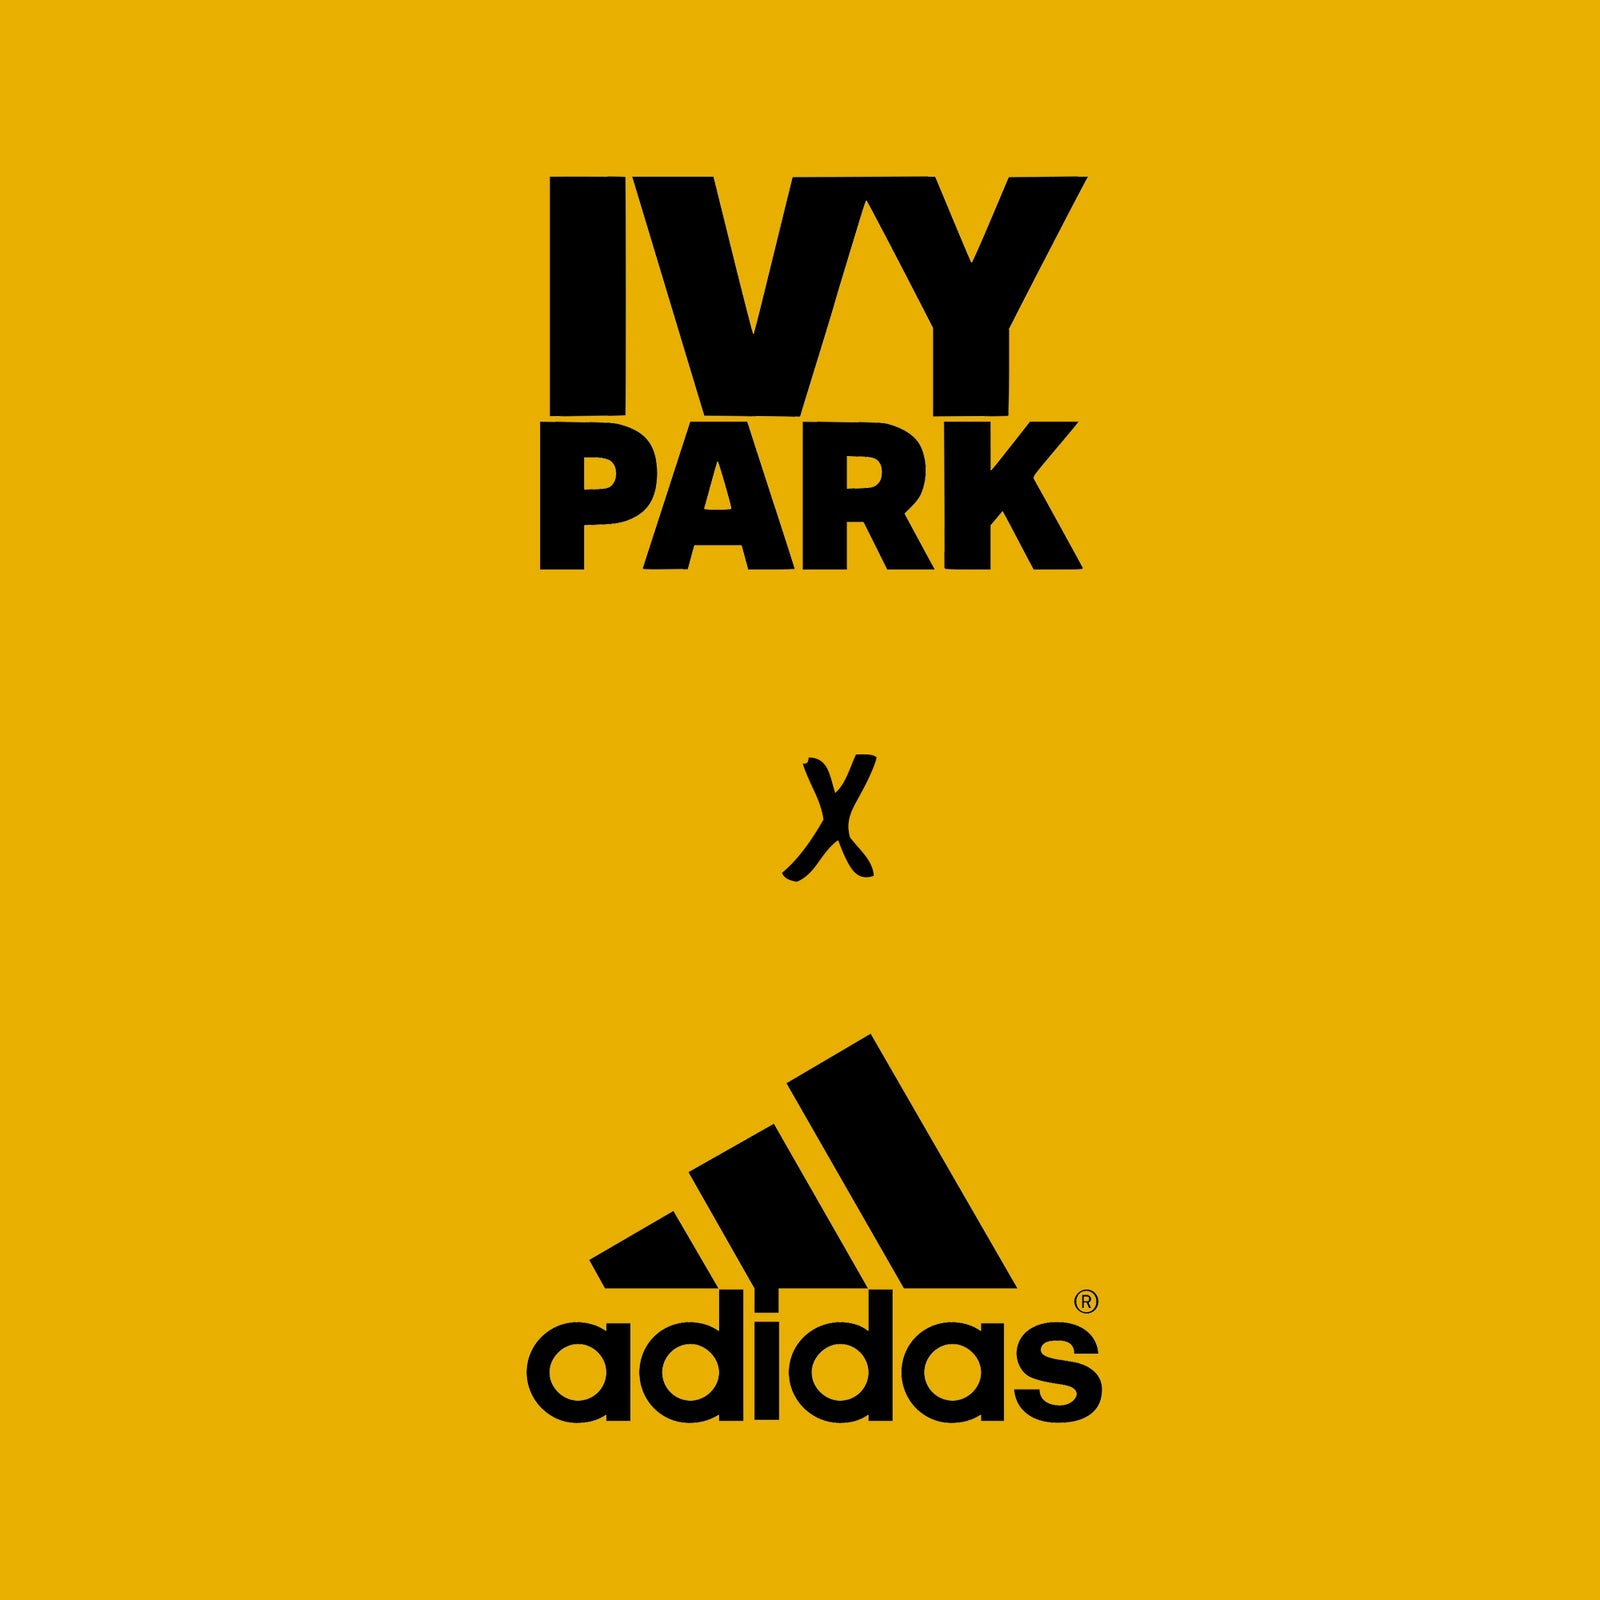 Beyonce Relaunches Ivy Park Collection In Partnership With